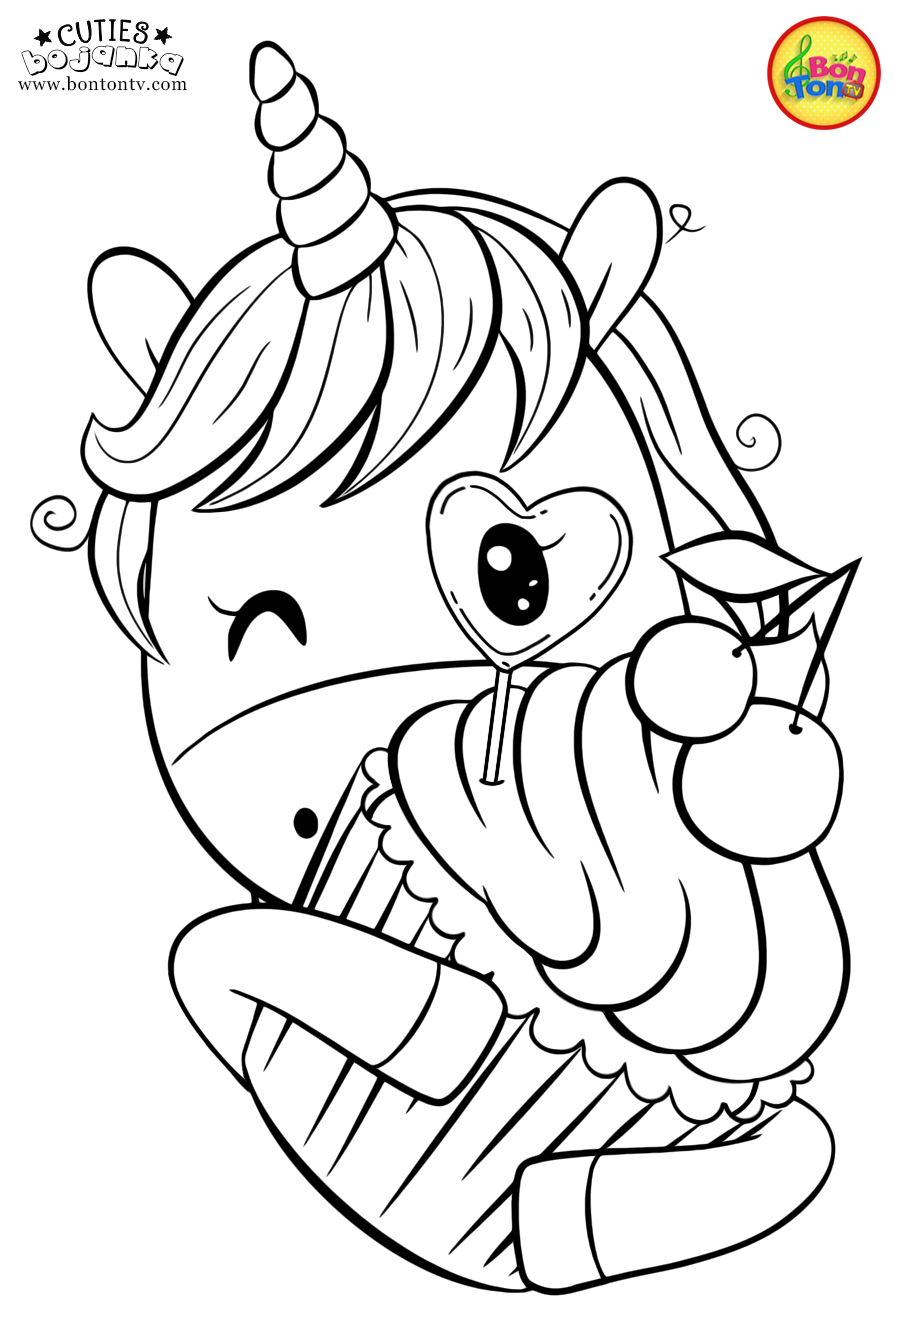 printable coloring pages for girls 10 and up coloring pages for girls dr odd printable pages for 10 and coloring girls up